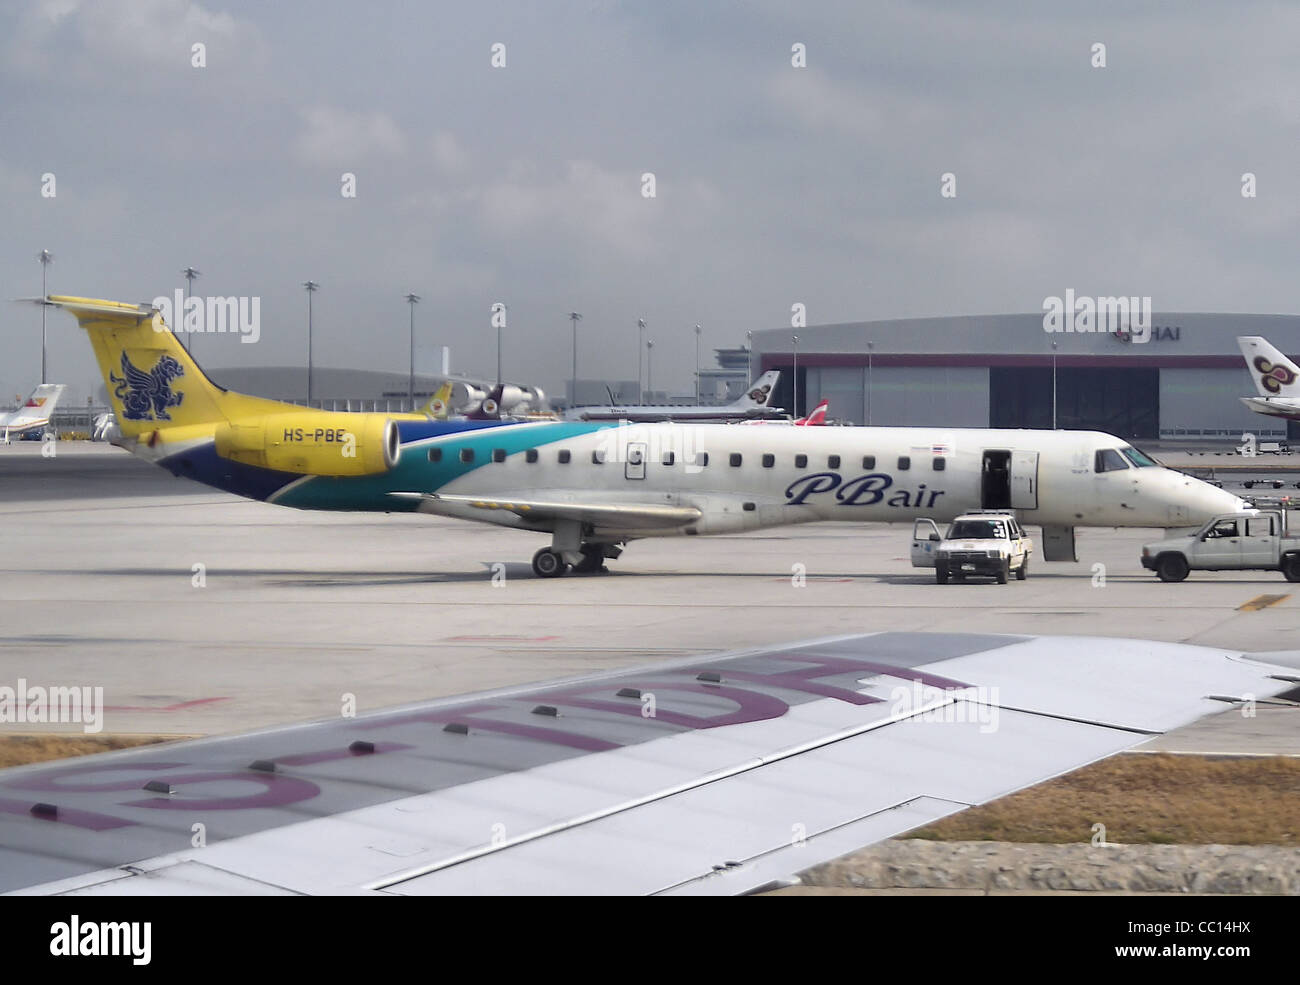 PBair Embraer ERJ-145, at Suvarnabhumi International Airport Bangkok. - Stock Image